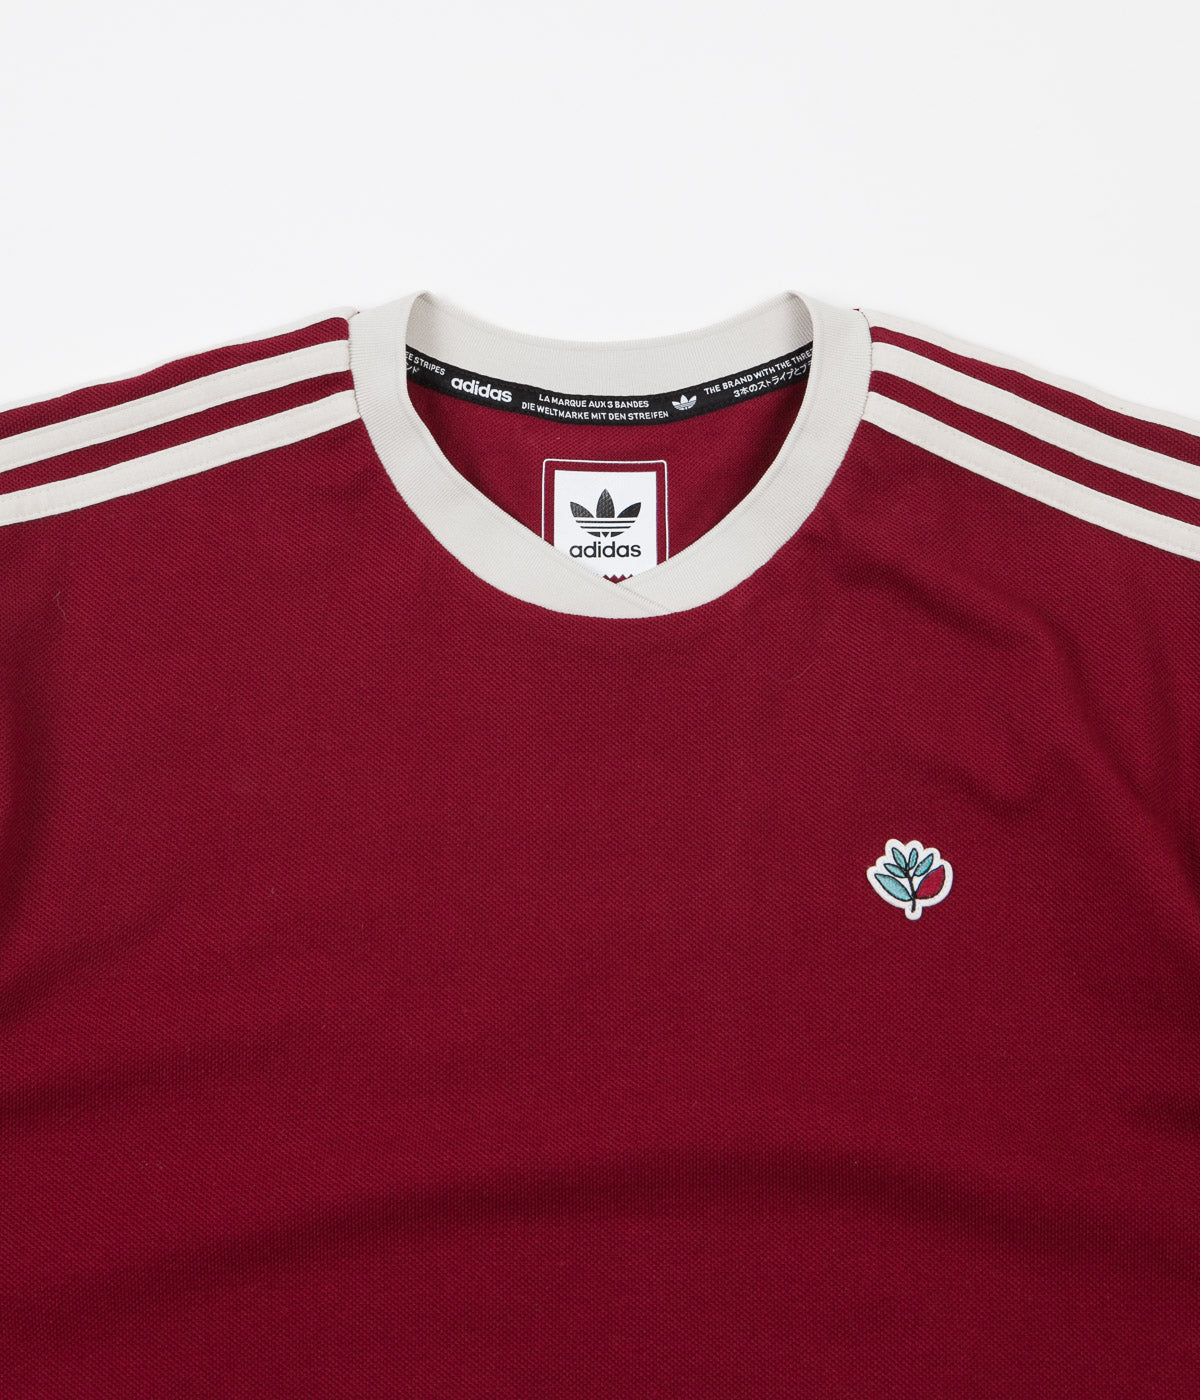 Adidas x Magenta Jersey - Collegiate Burgundy / Clear Brown